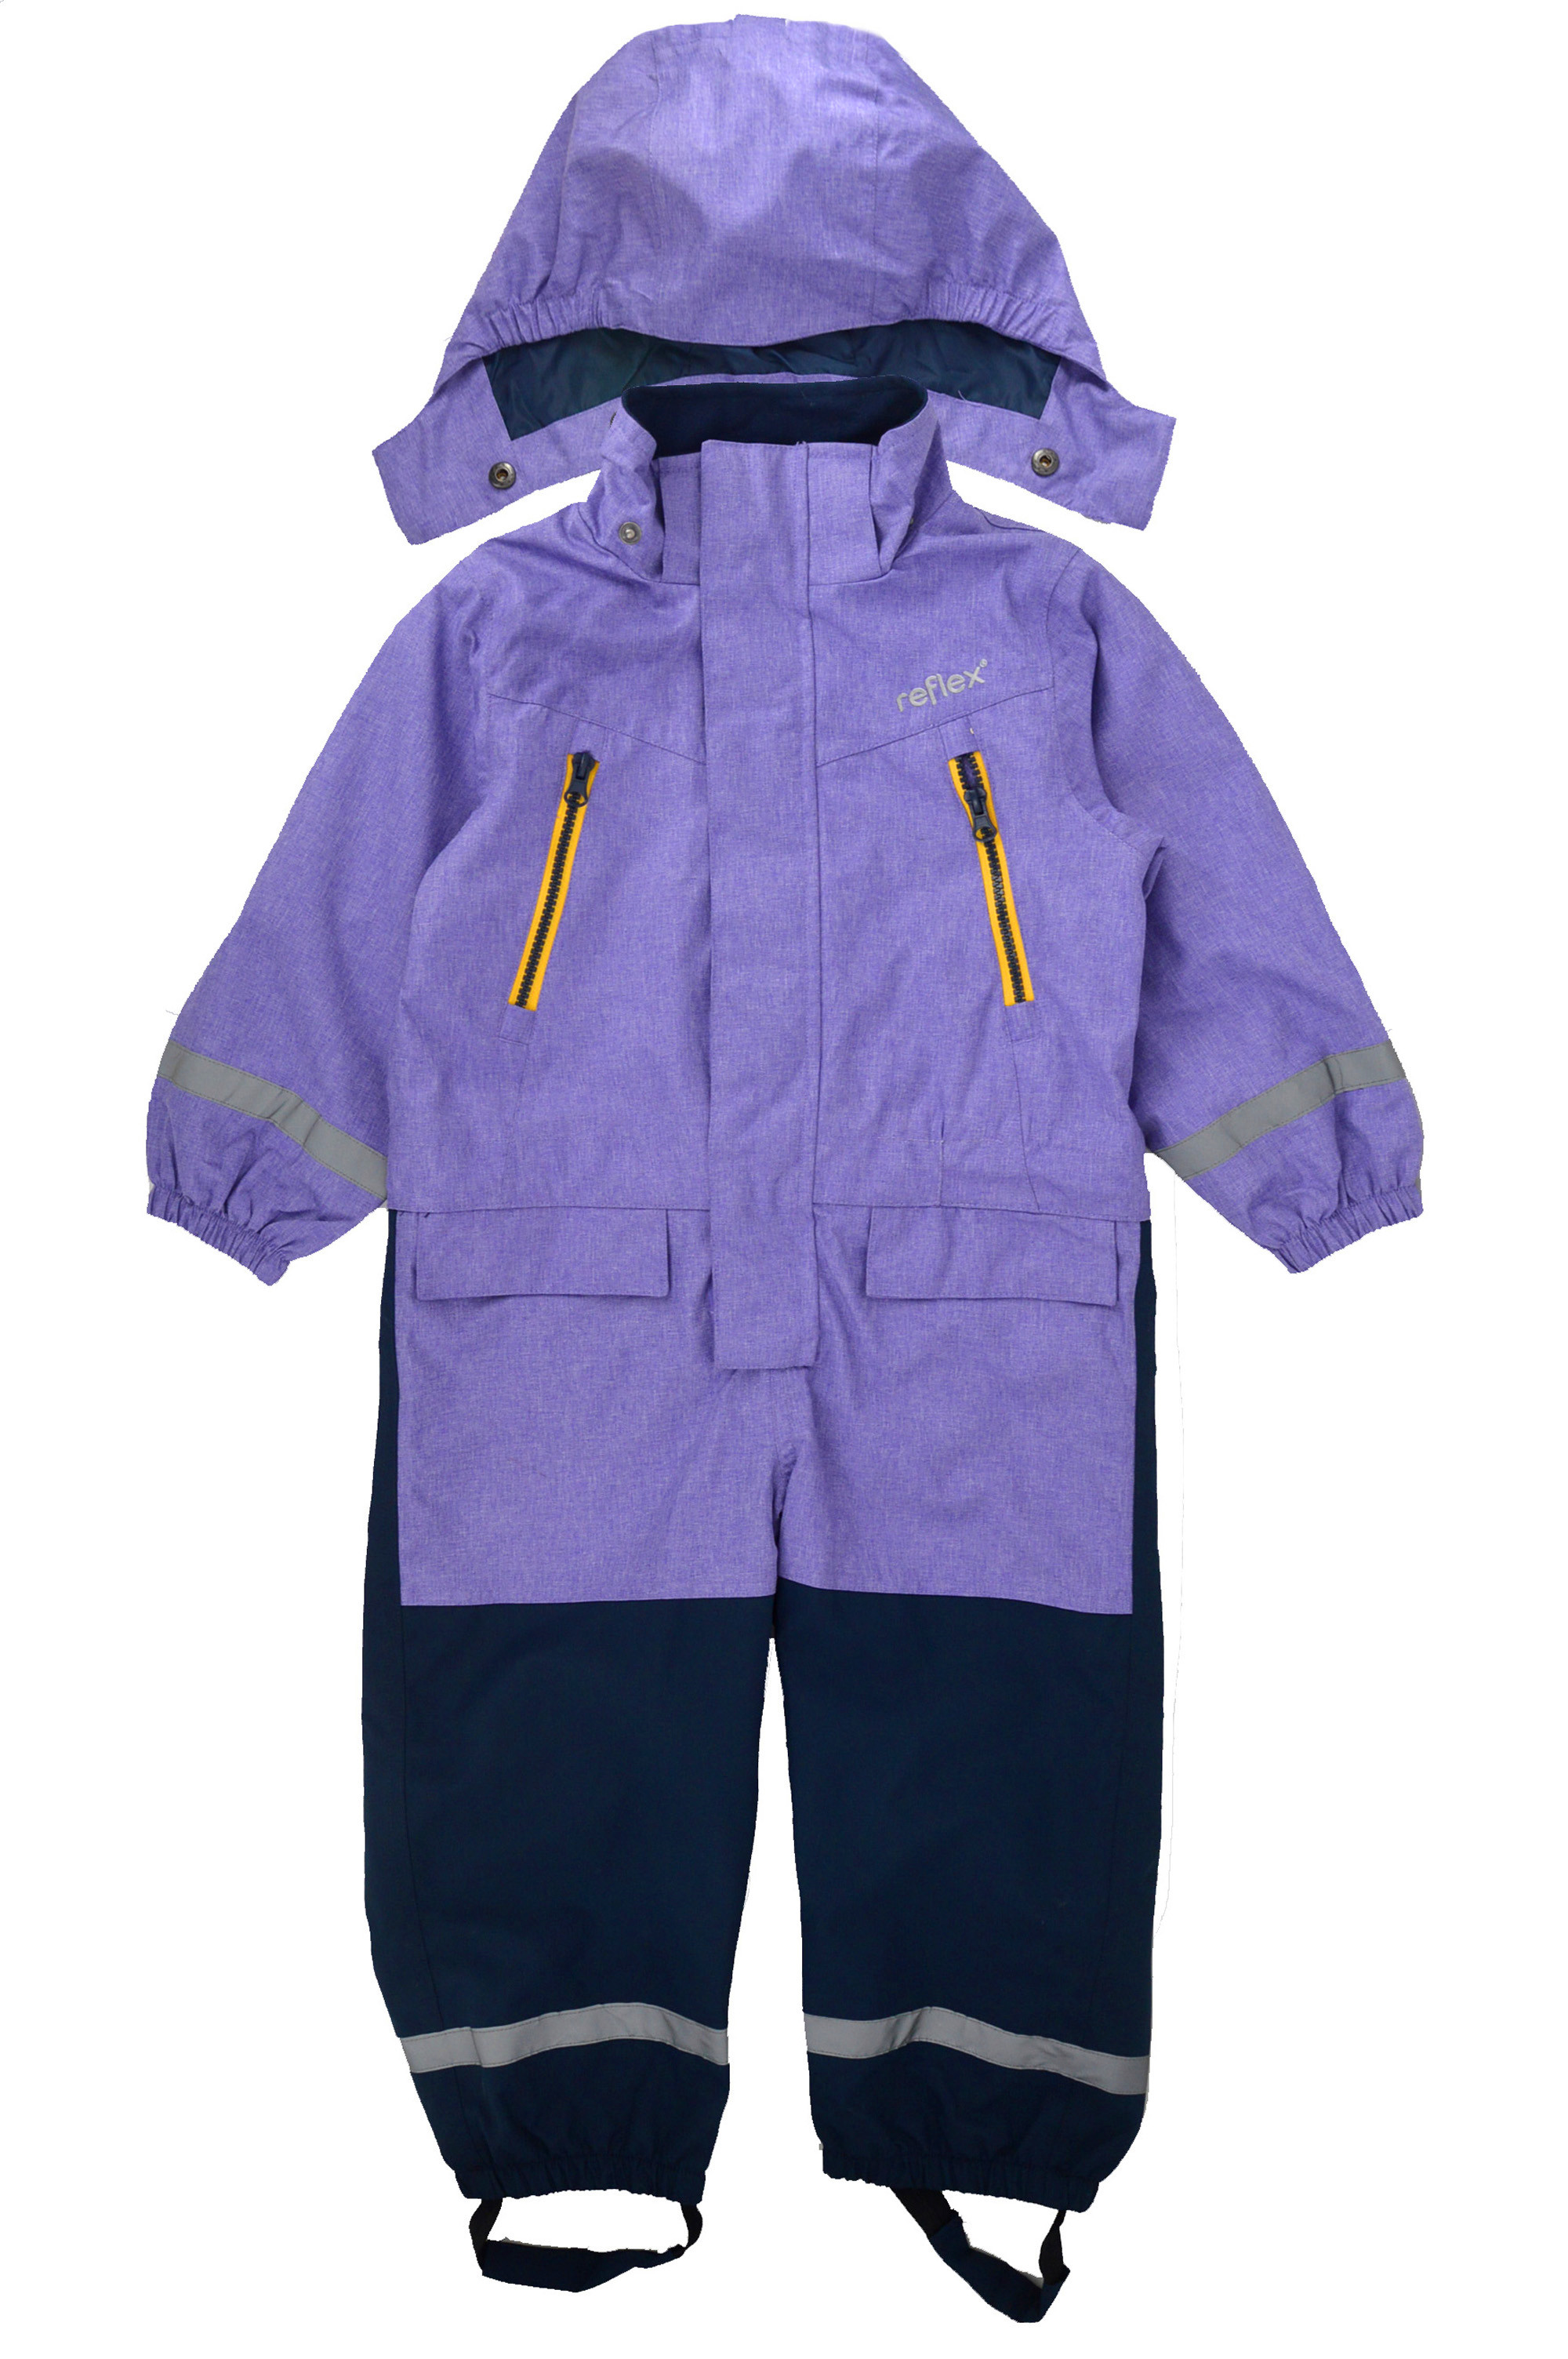 Spring autumn and winter outdoor skiing children 39 s infants thin section waterproof breathable jumpsuit boys and girls conjoined in Rompers from Mother amp Kids